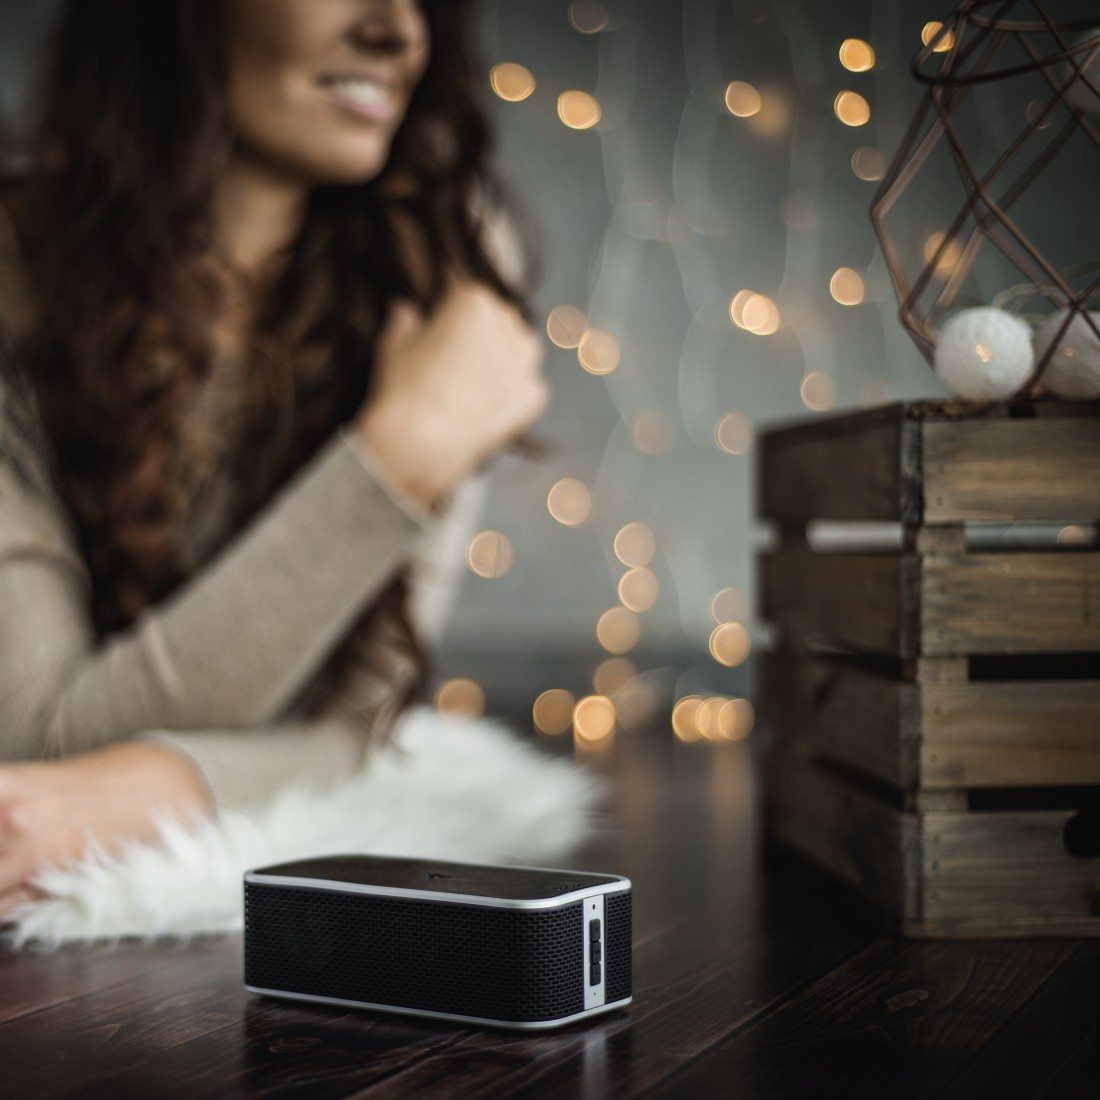 awx5 High-Res Appliance 5 - Hama, Bluetooth Speaker + Power Brick Qi Charger